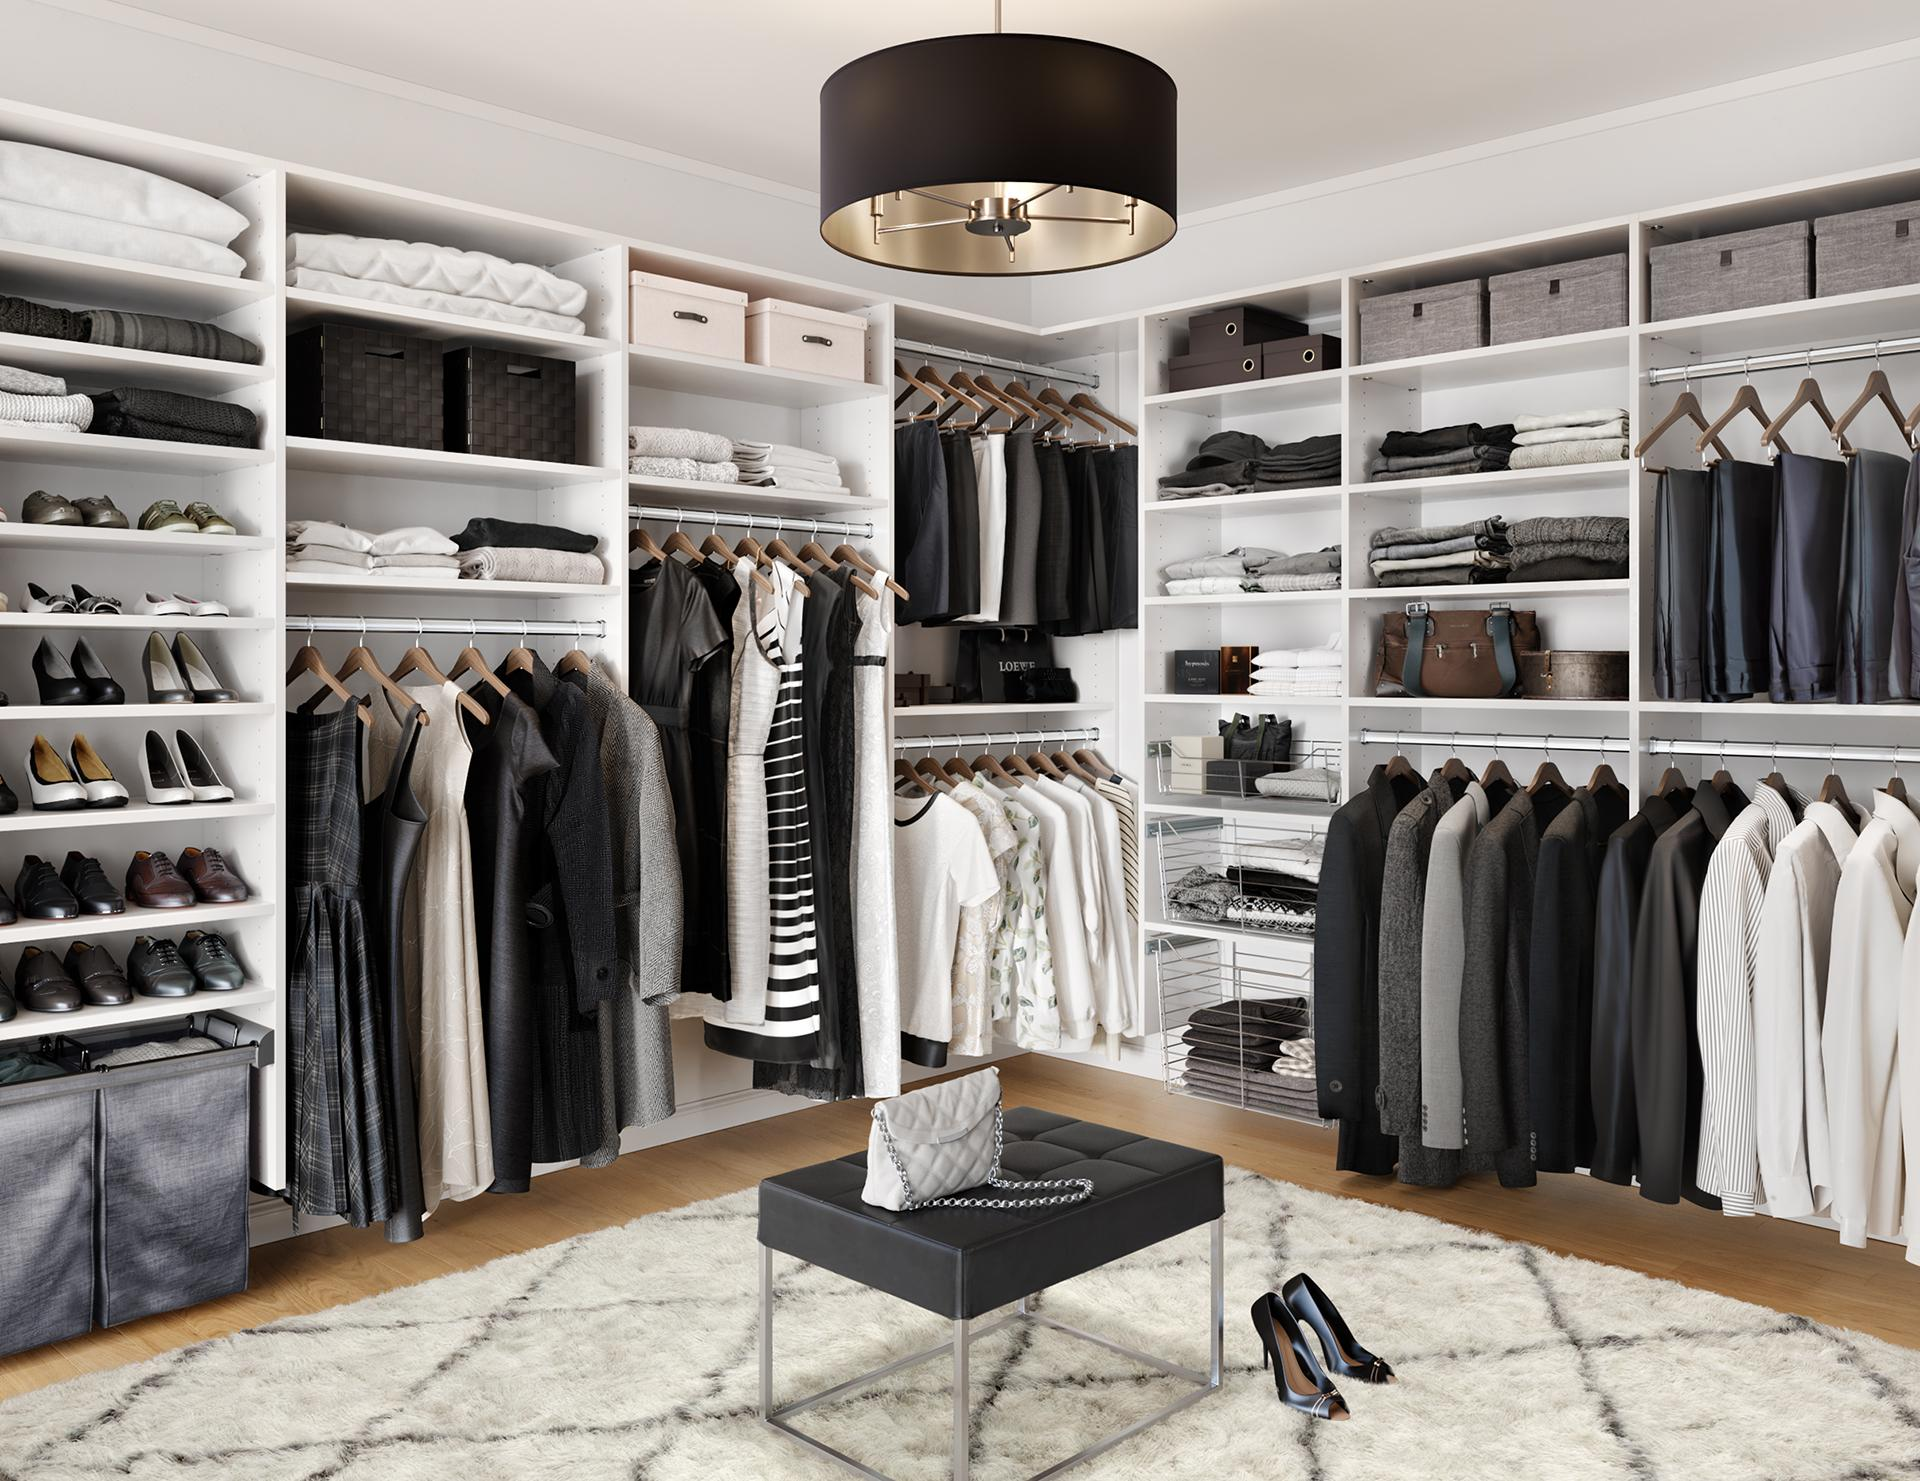 dma in genius die westchester closet homes luxurious walk luxury closets